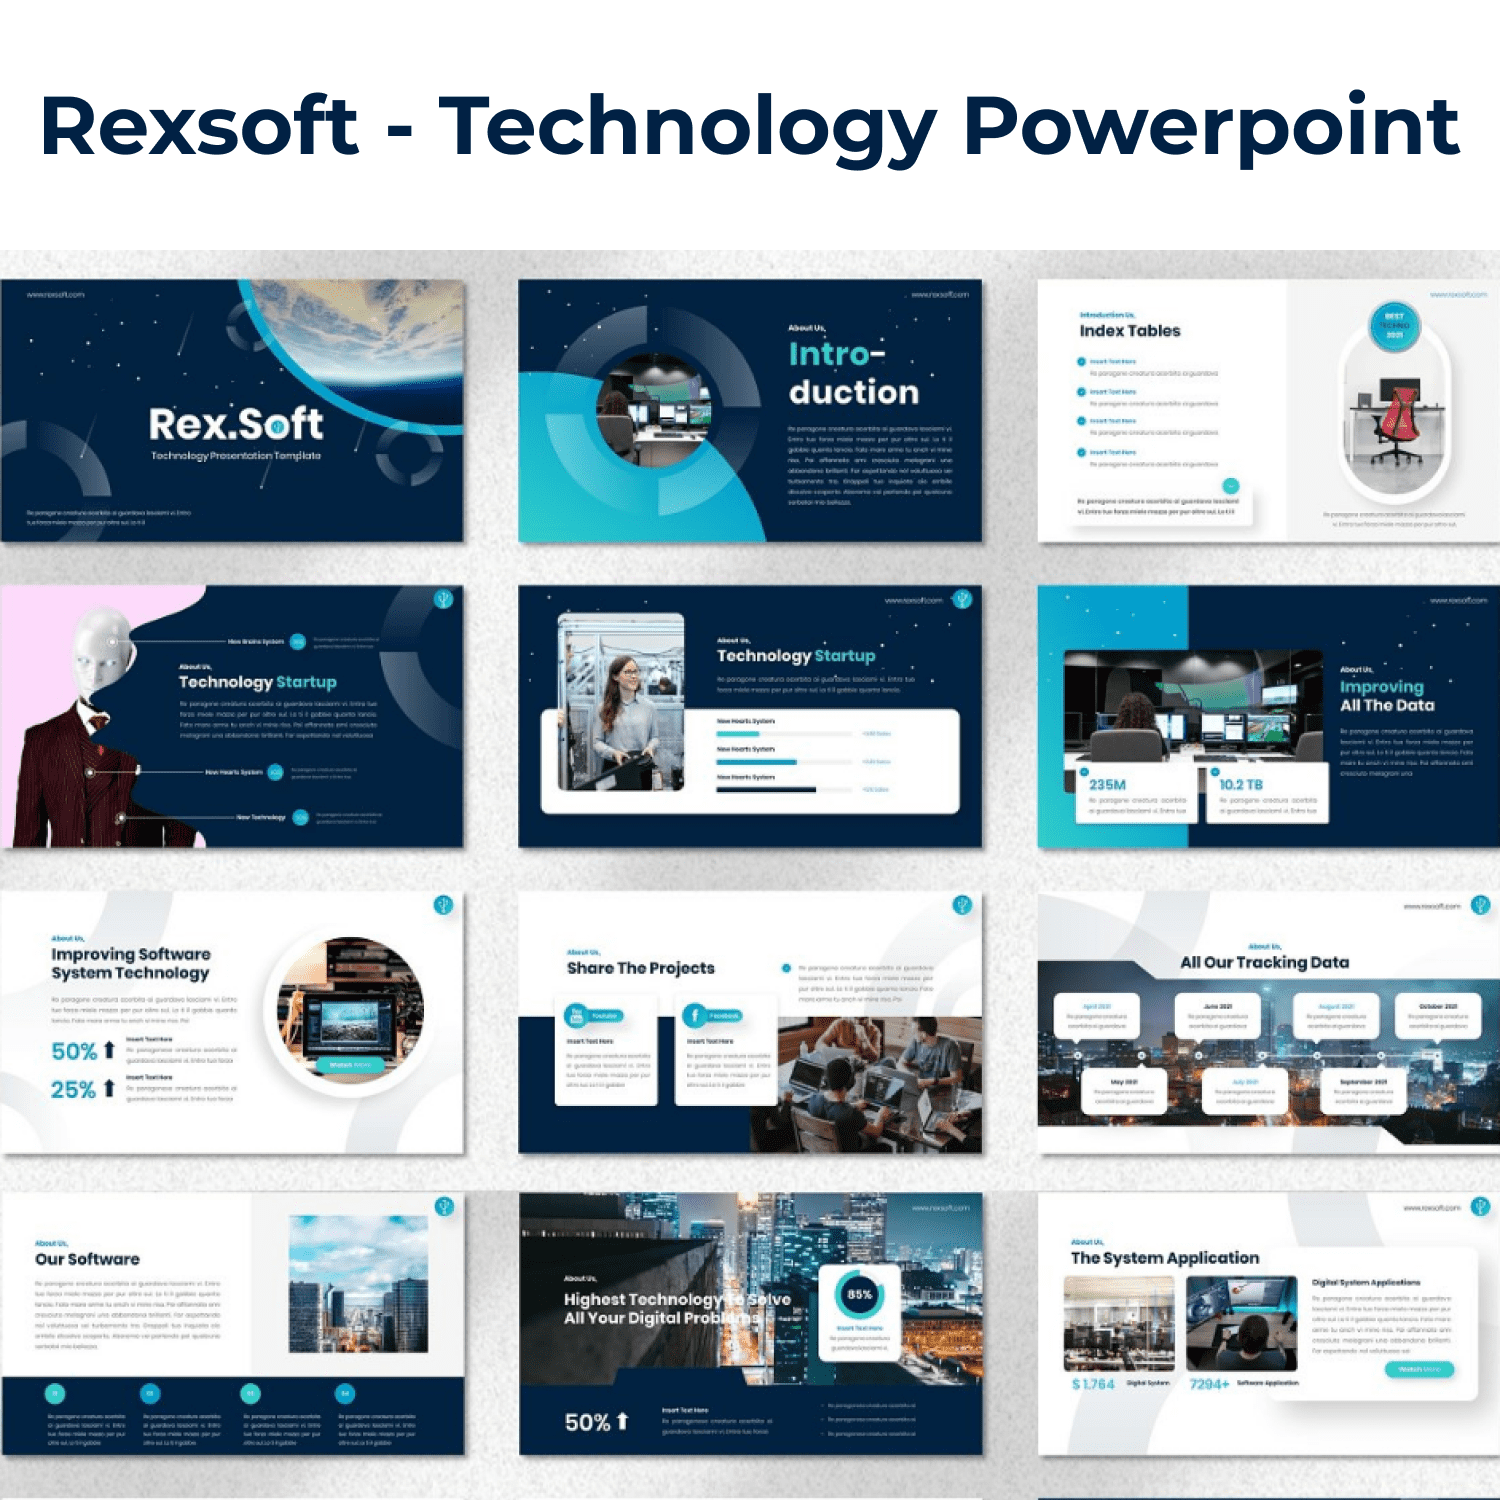 Rexsoft - Technology Powerpoint cover image.